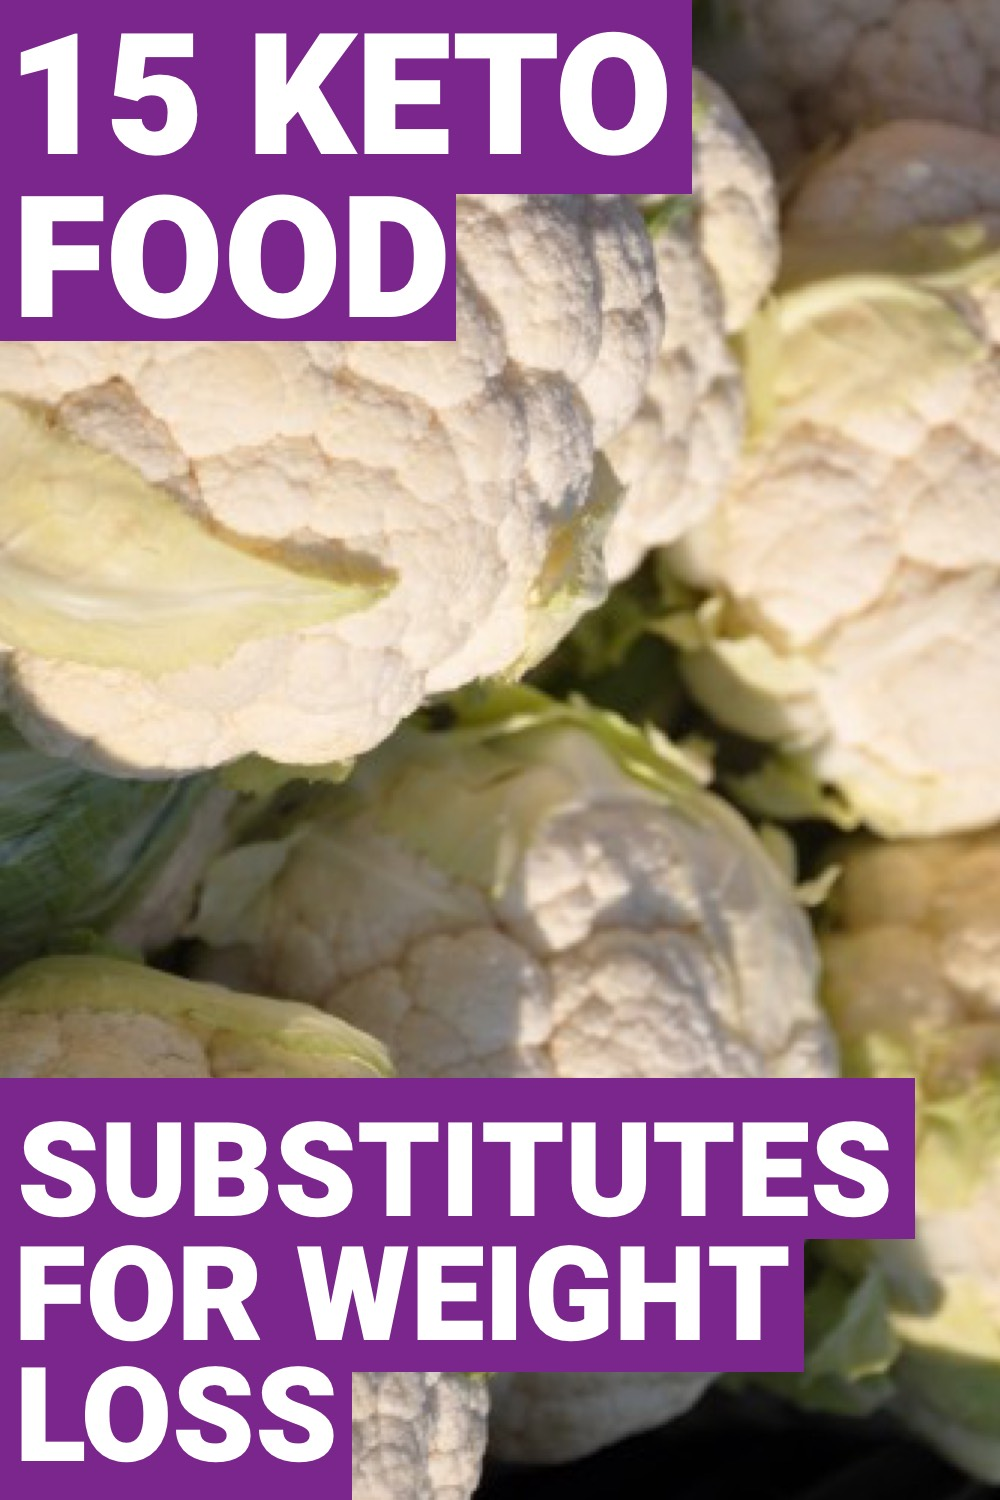 Being on a ketogenic diet can be tough when you have to give up some of your favorite carb loaded foods. However here are 15 keto substitutes that are going to help you lose weight.